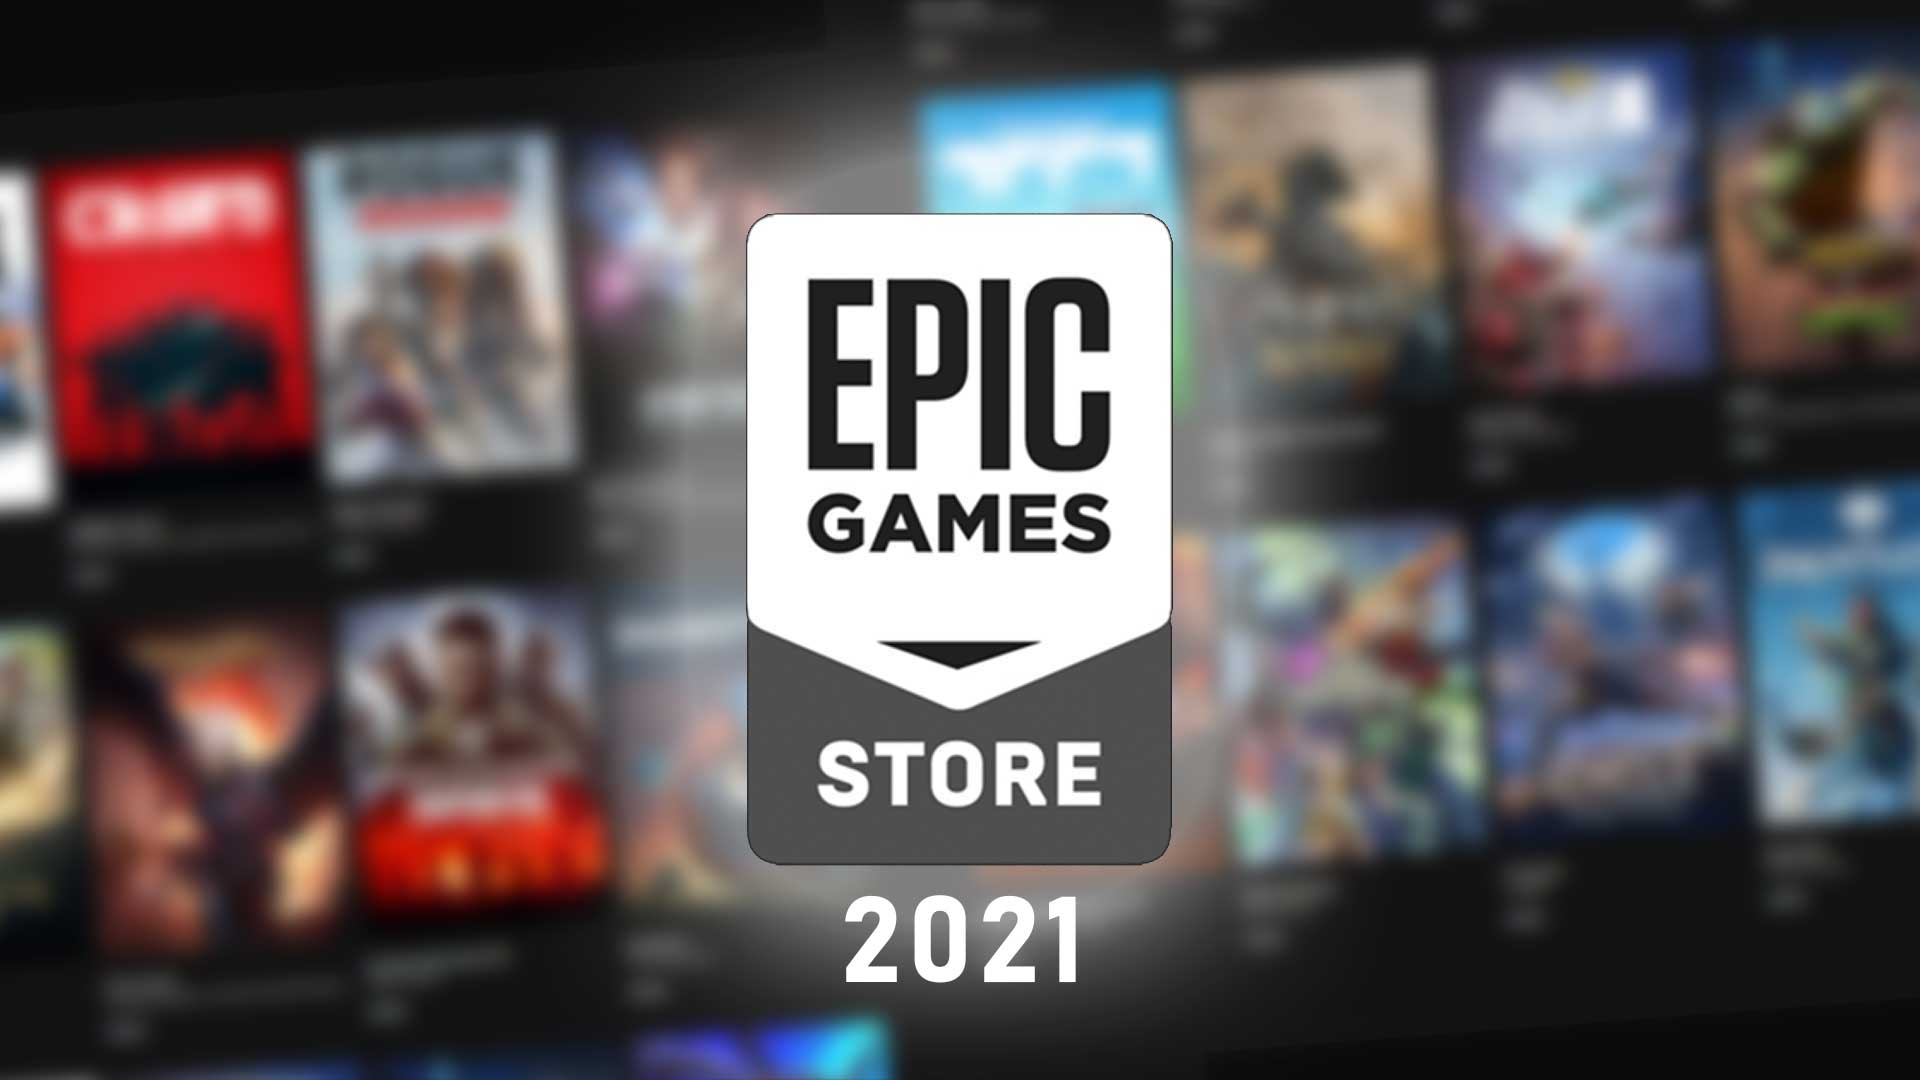 epic games store egs 2021